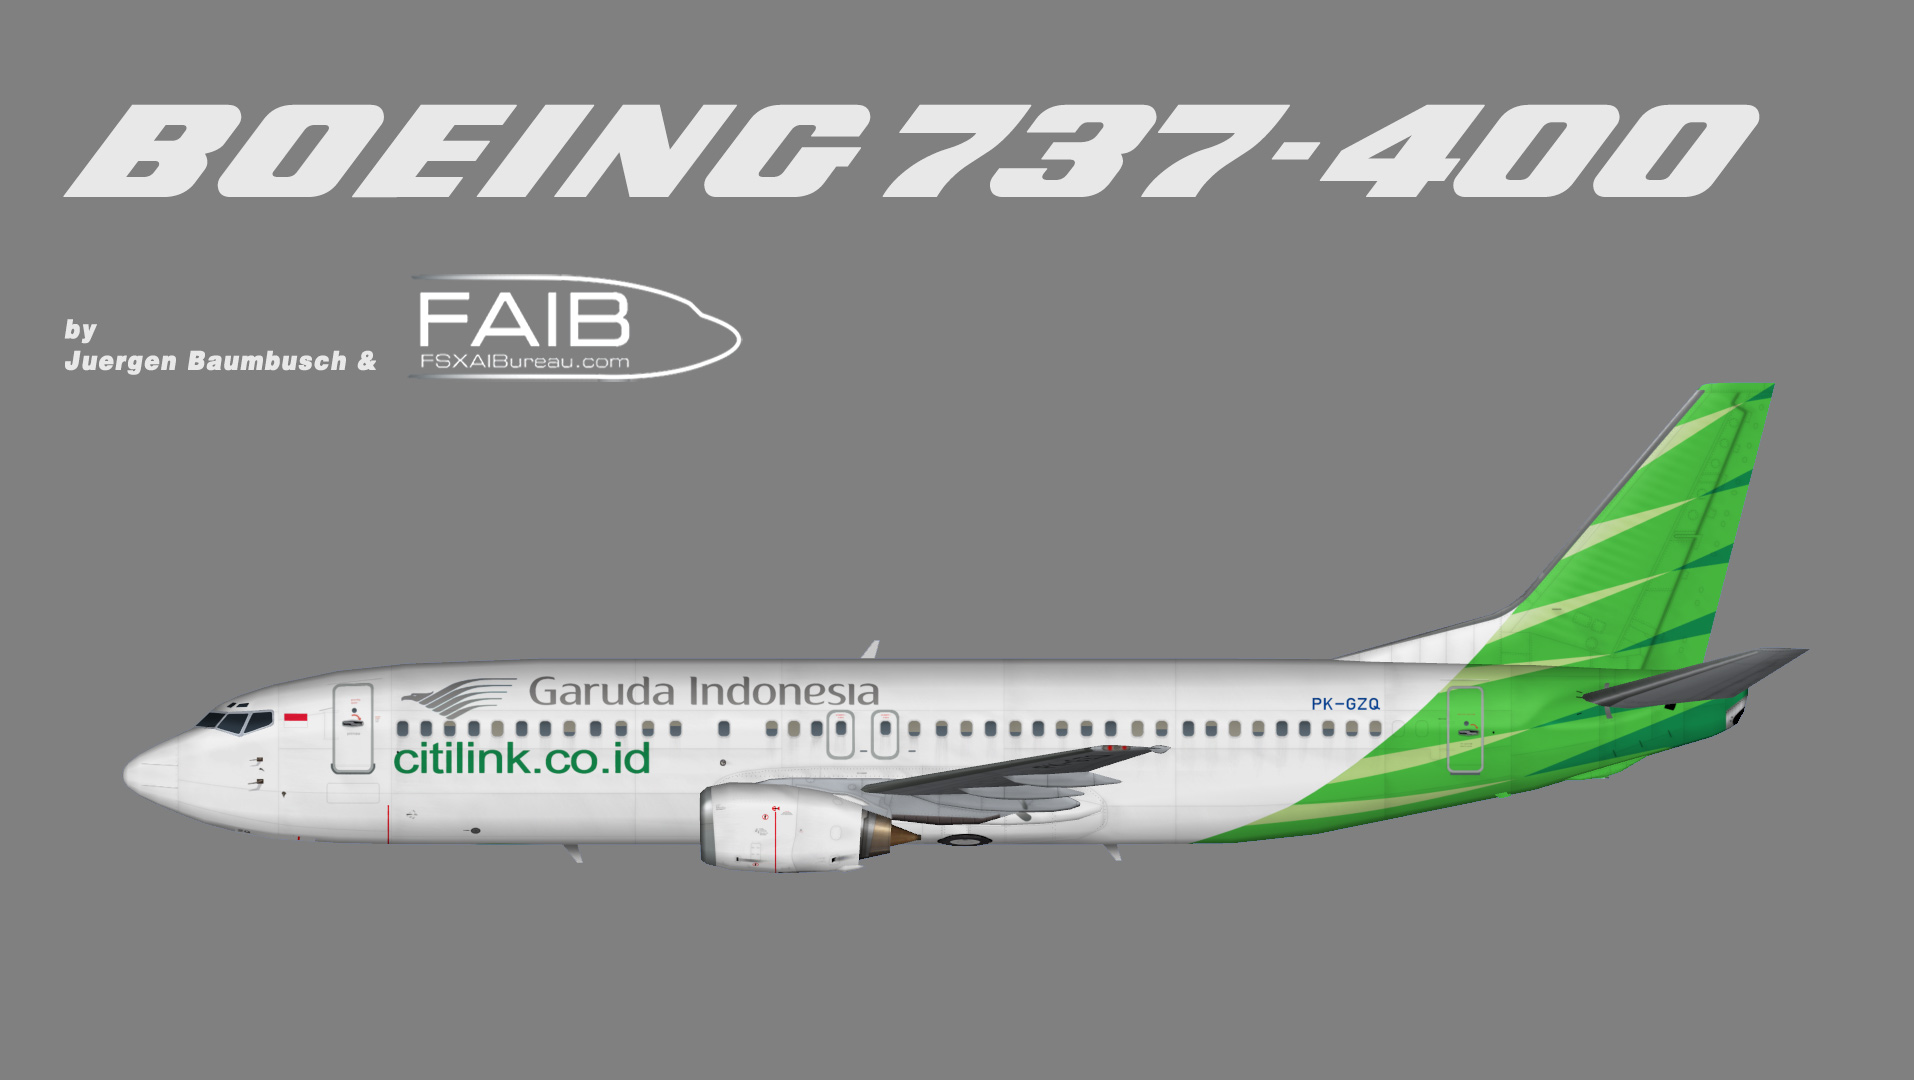 Citilink boeing 737 400 juergens paint hangar teaser reheart Image collections